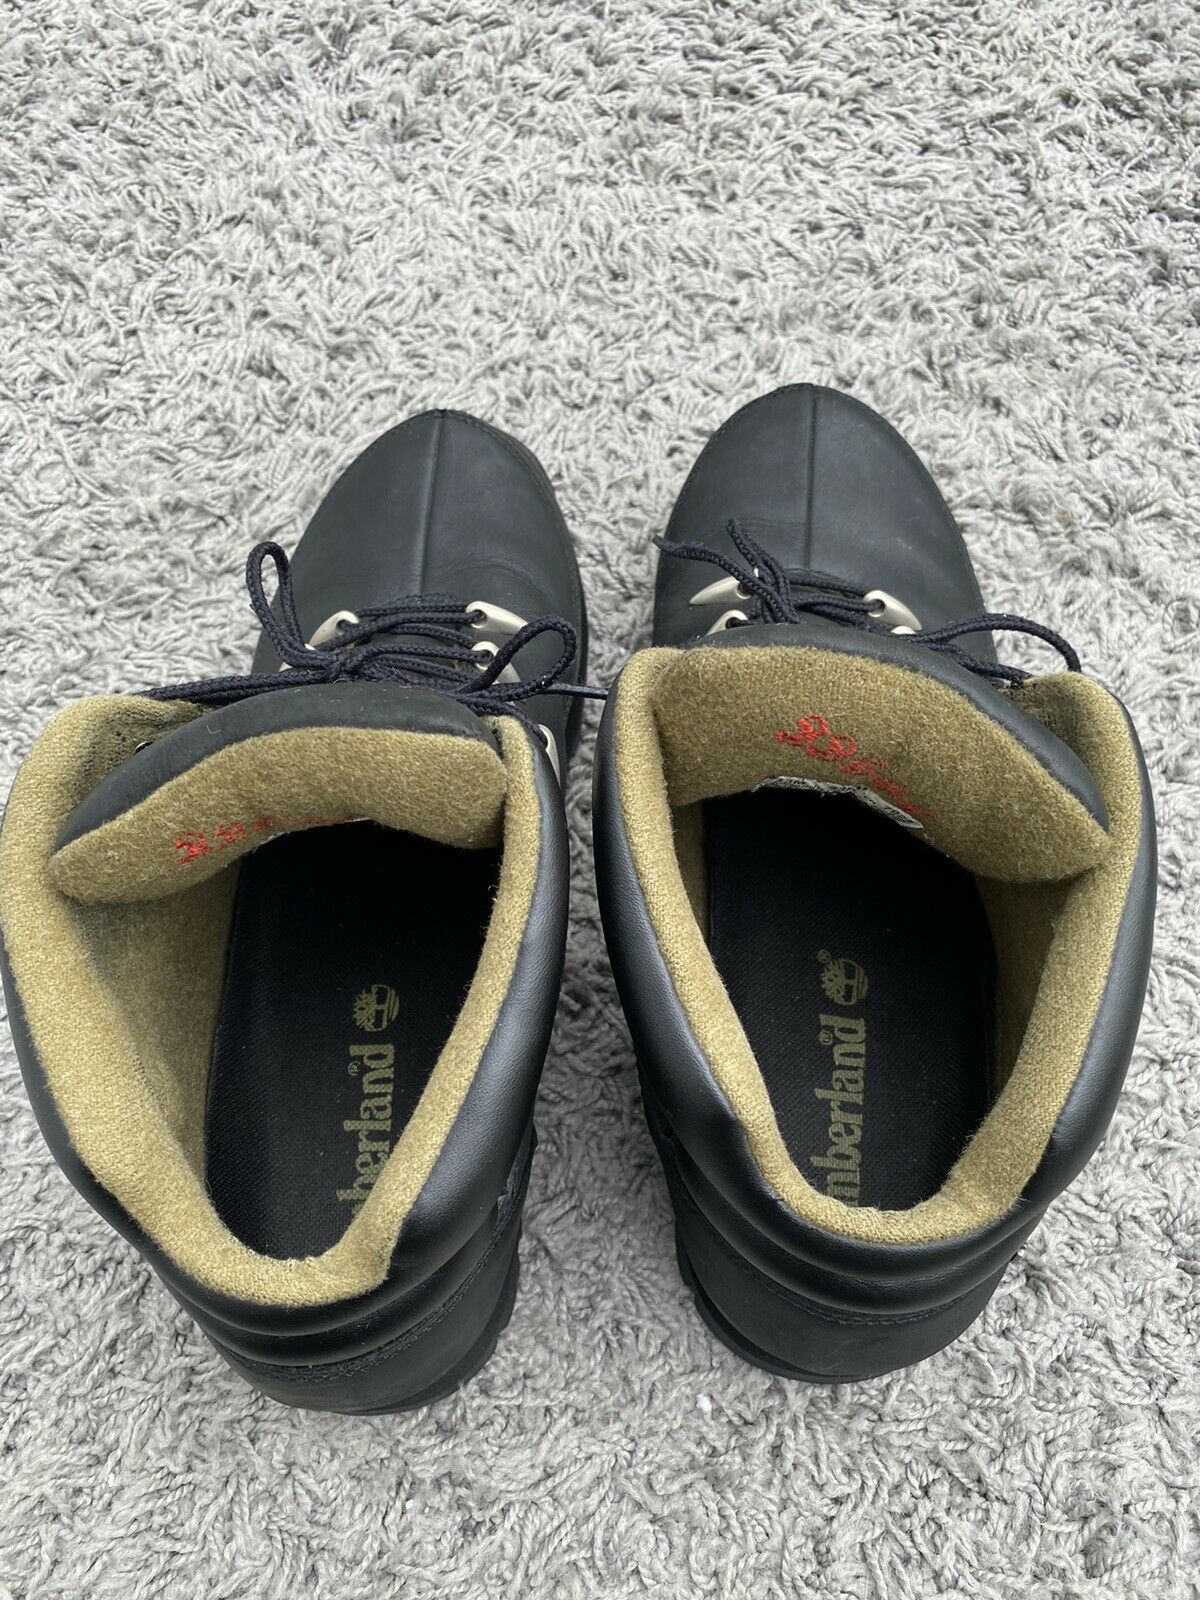 mens timberland boots TBL-73-SRPLS Black Size uk13 small fitting more like 12